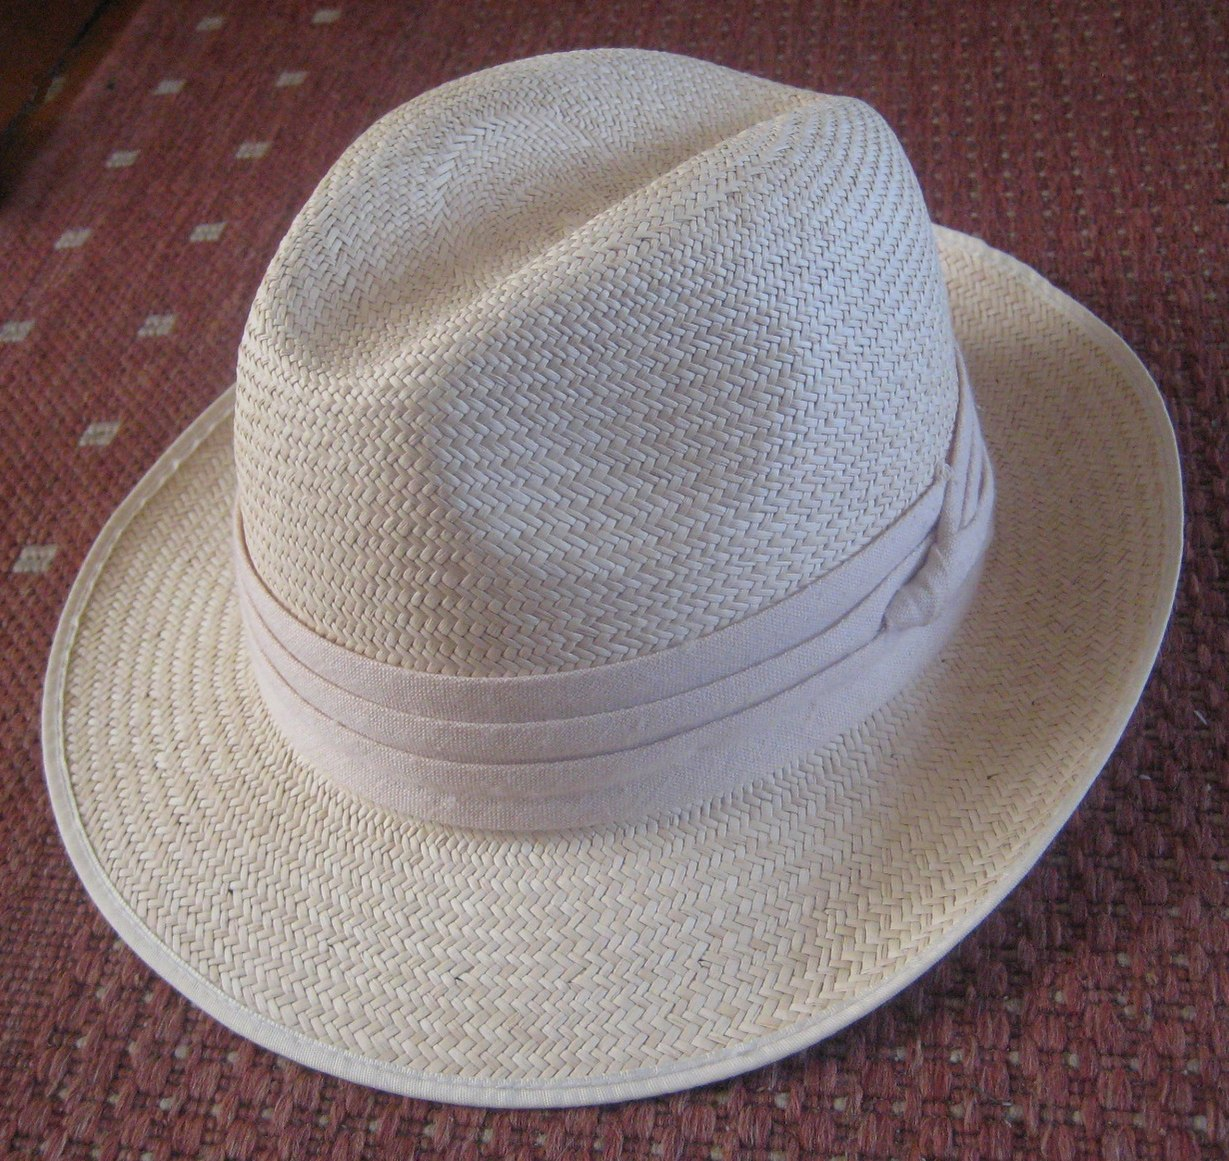 dc5d36d8 Panama hat - The complete information and online sale with free shipping.  Order and buy now for the lowest price in the best online store!